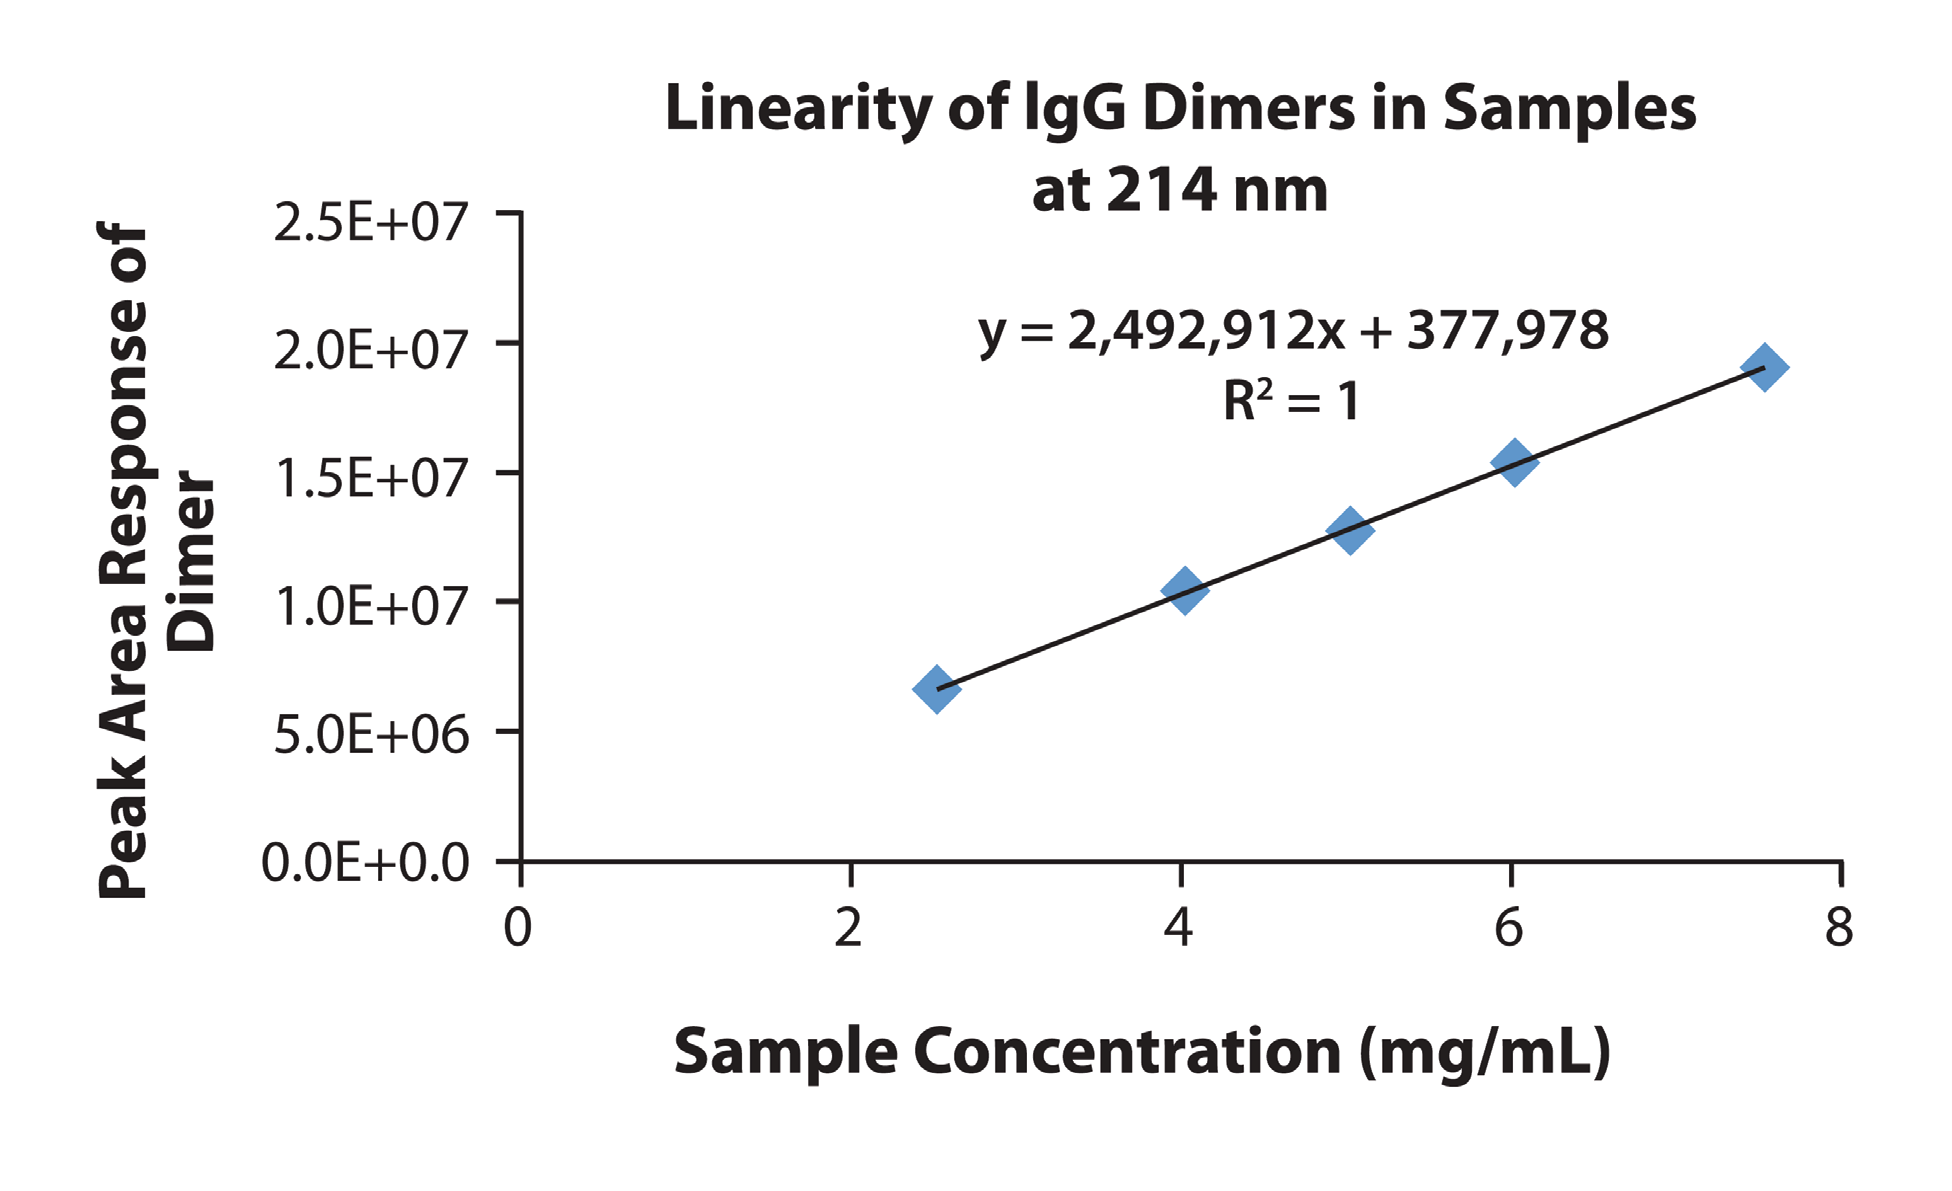 Figure 4 (Continued). Linearity for Peak Area Responses of the IgG monomer (at both 280 nm and 214 nm) as well as Dimer, Aggregate, and Fragments at 214 nm Observed in IgG Sample Preparations